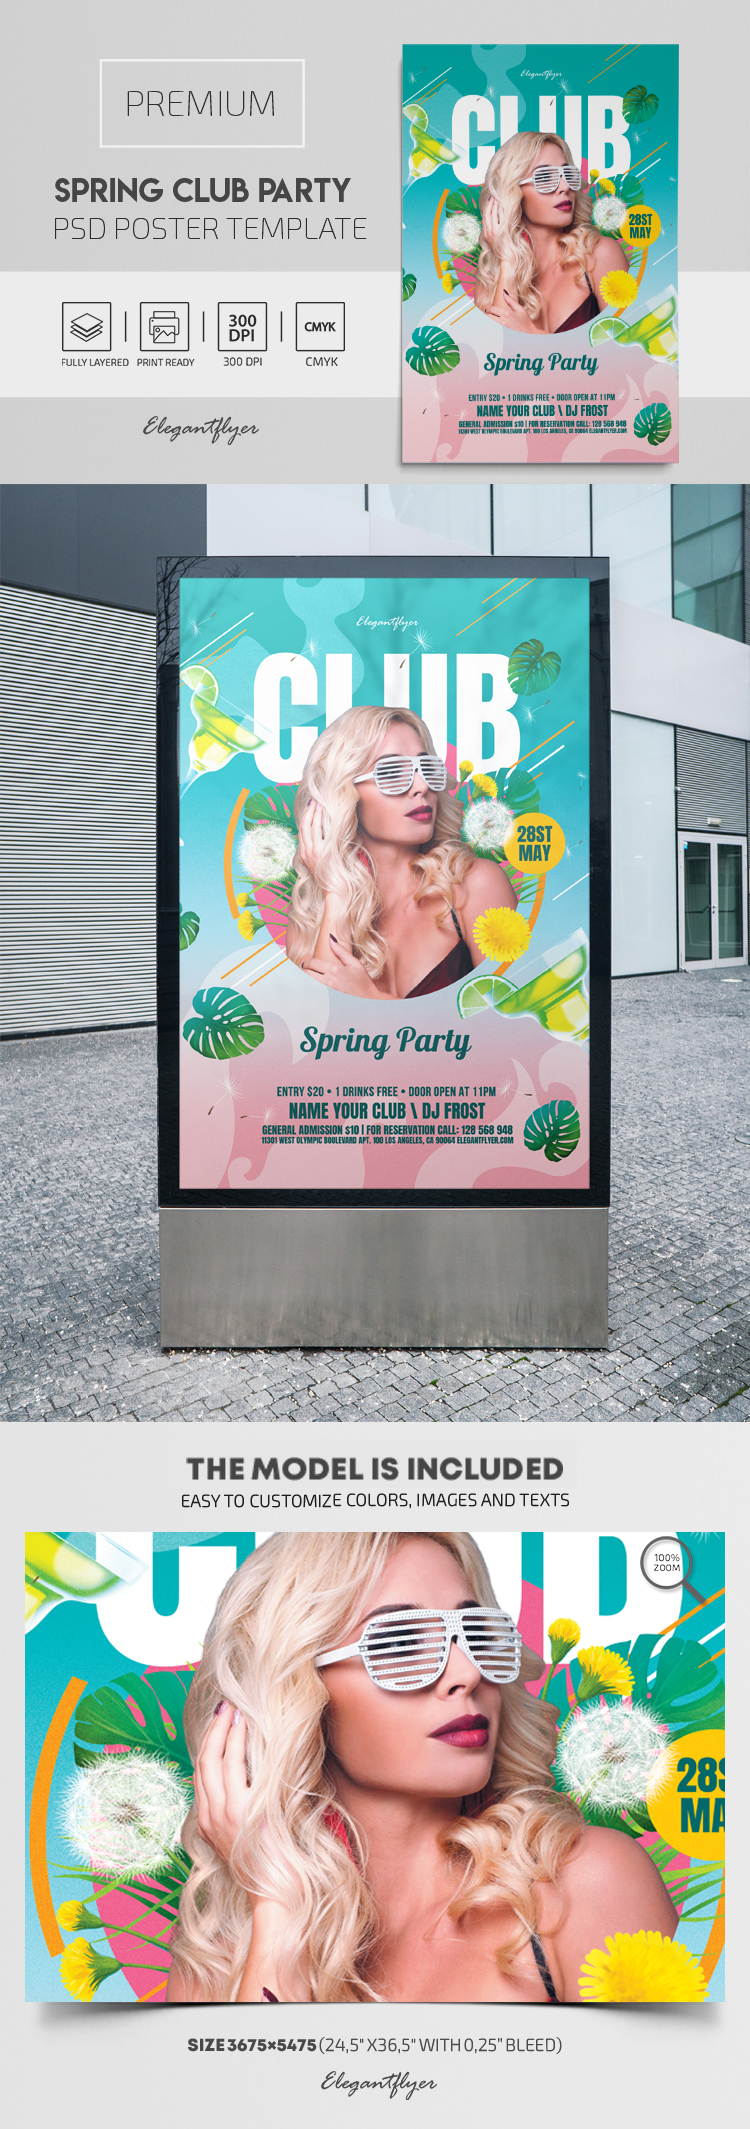 Spring Club Party – Premium PSD Poster Template